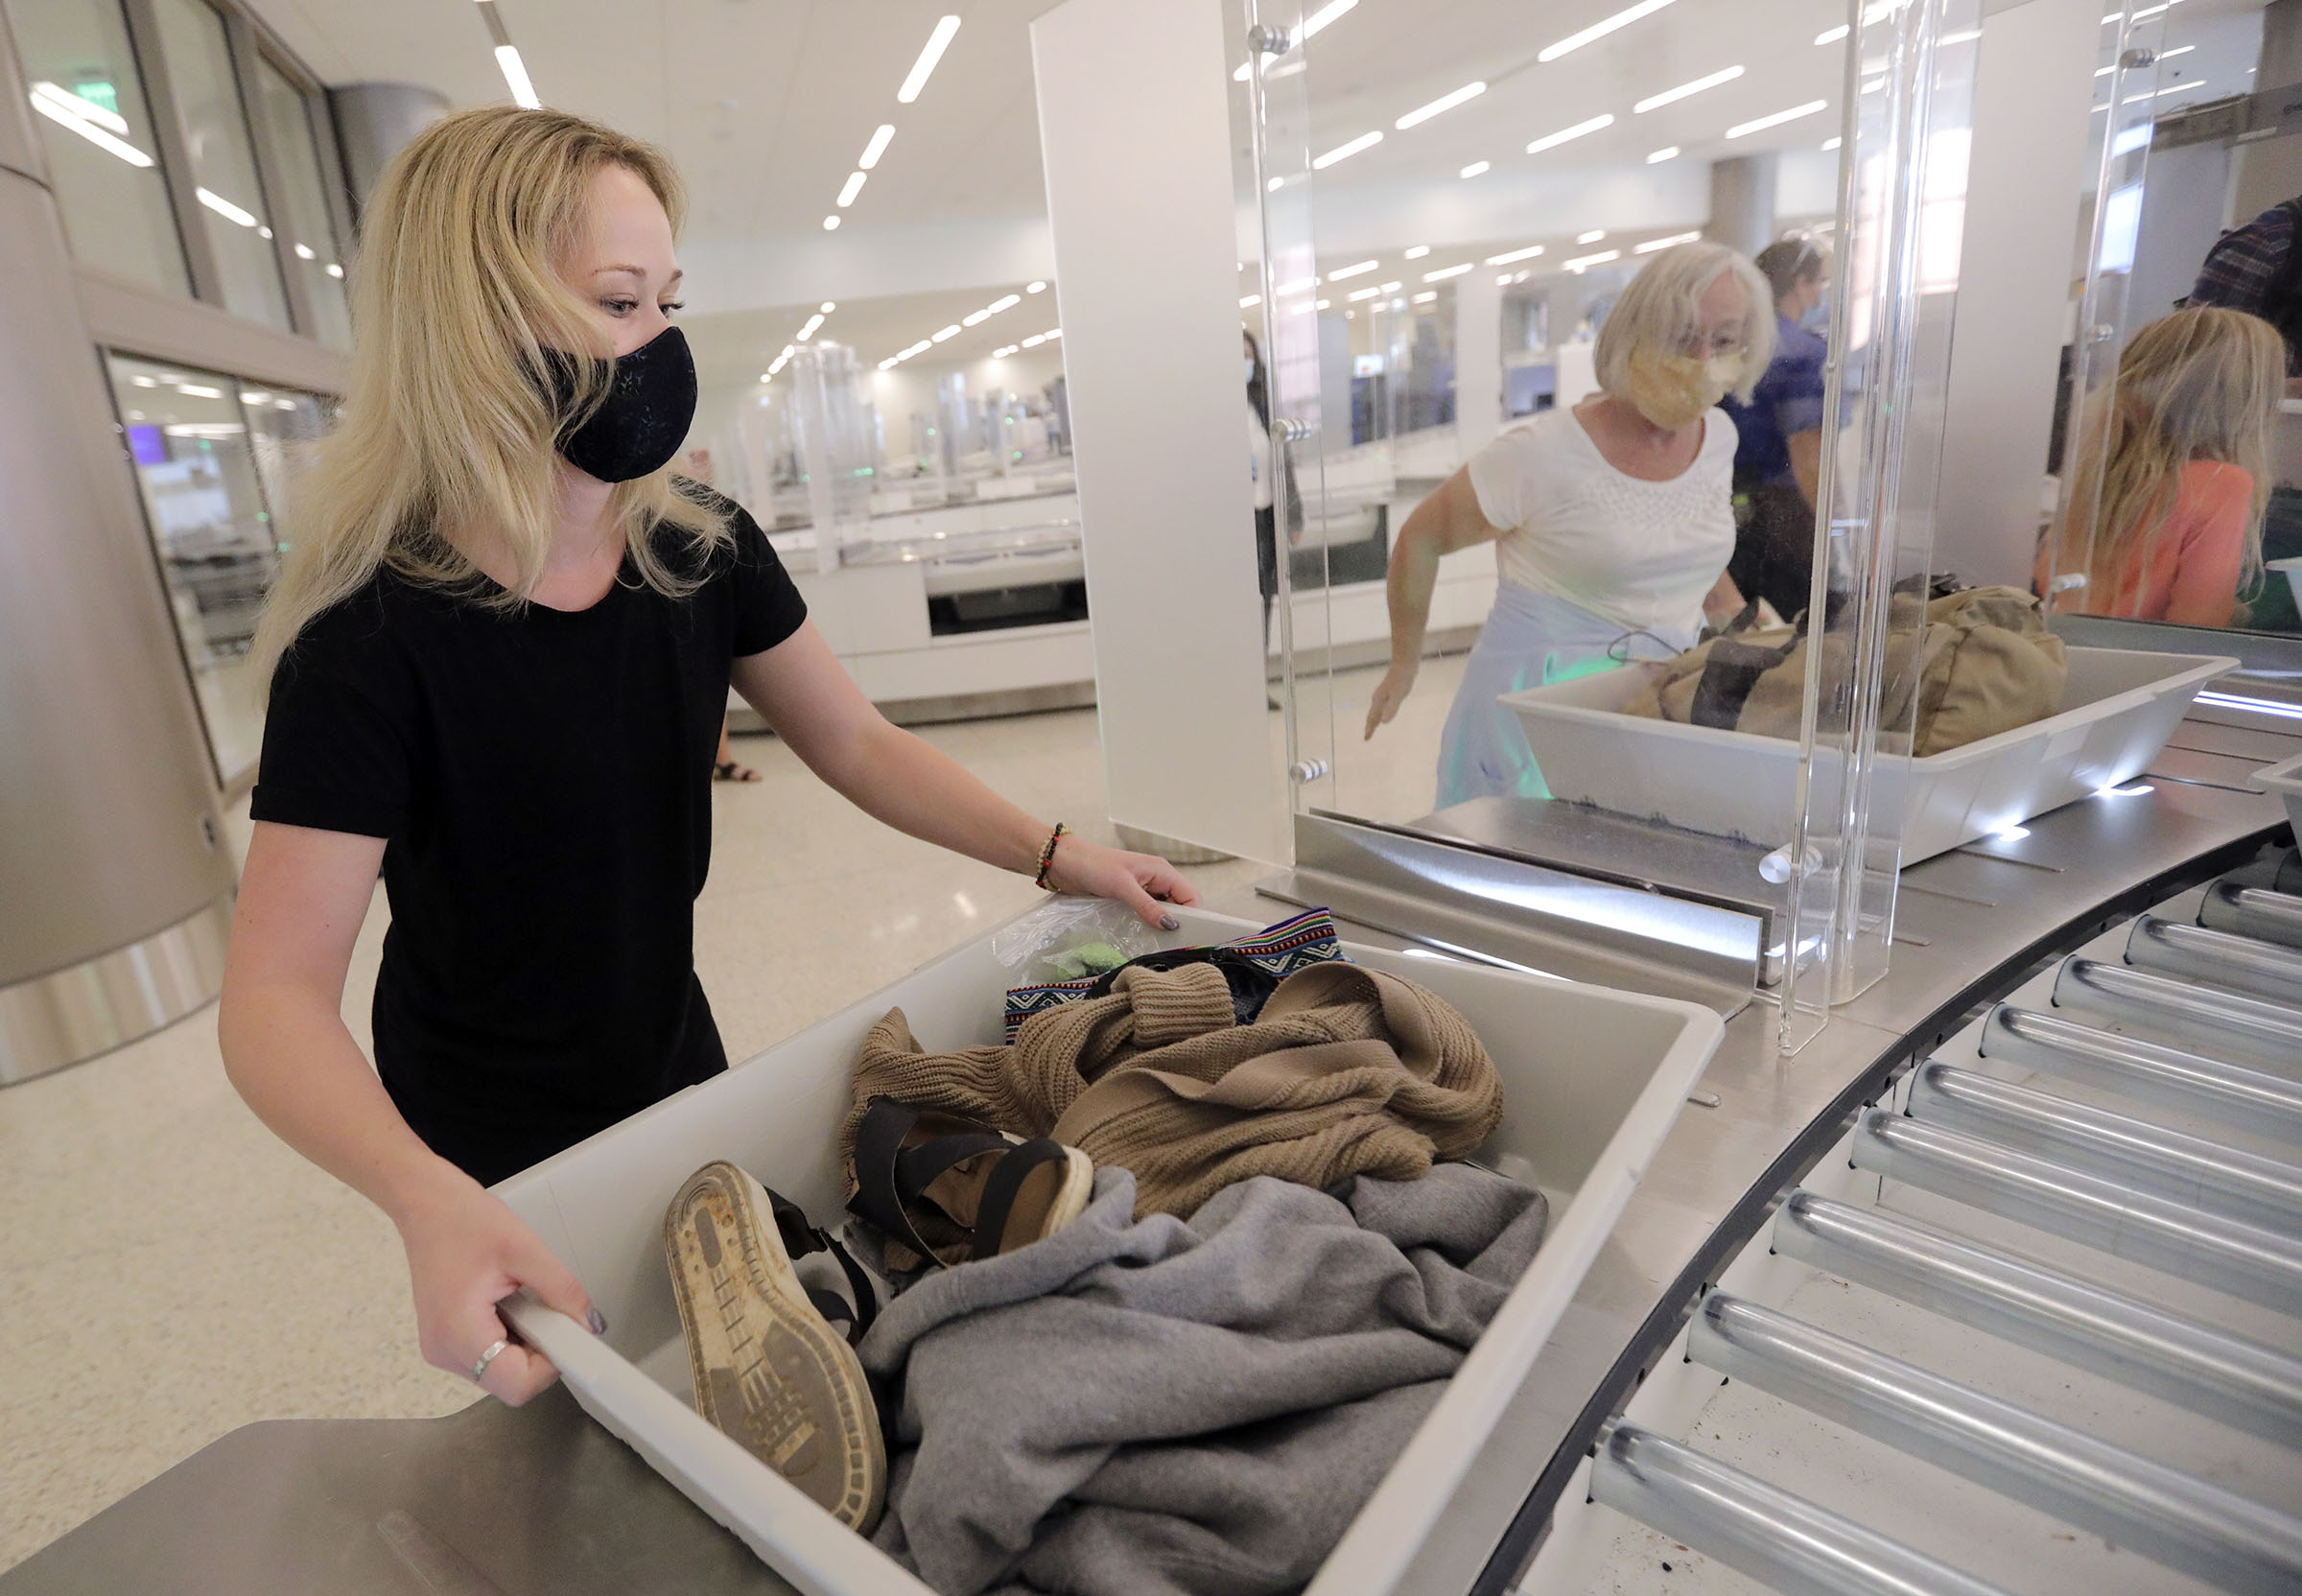 Reagan Peterson puts her belongings in a bin for screening at the Transportation Security Administration checkpoint at the new Salt Lake City International Airport in Tuesday, Sept. 22, 2020. The bins are 25% larger than normal bins.